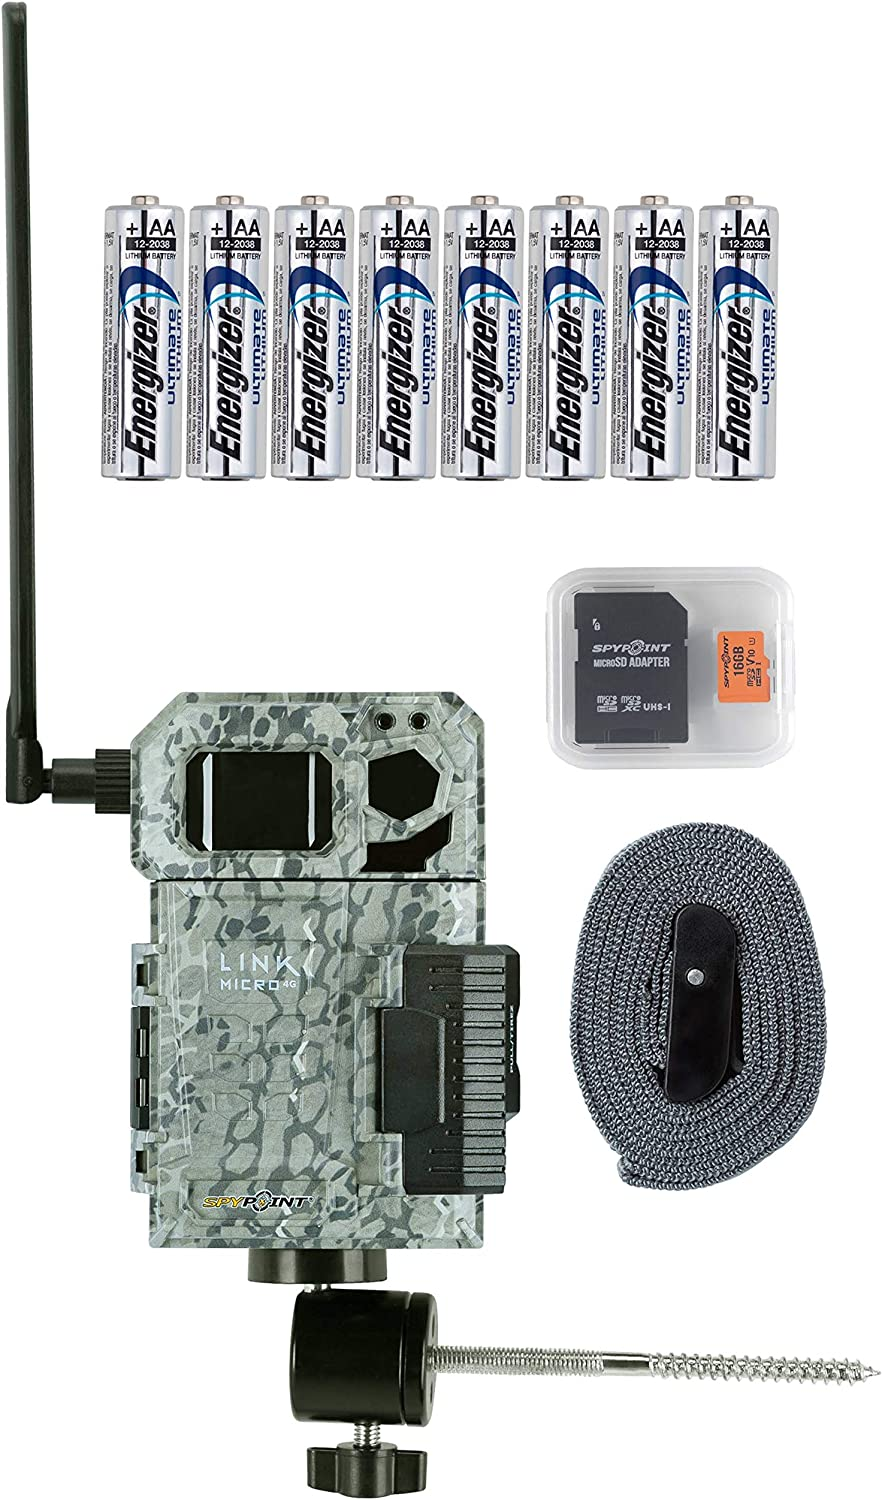 Spypoint Link Micro-V 4G Cellular Trail Camera with Batteries, Micro SD Card, and Mount